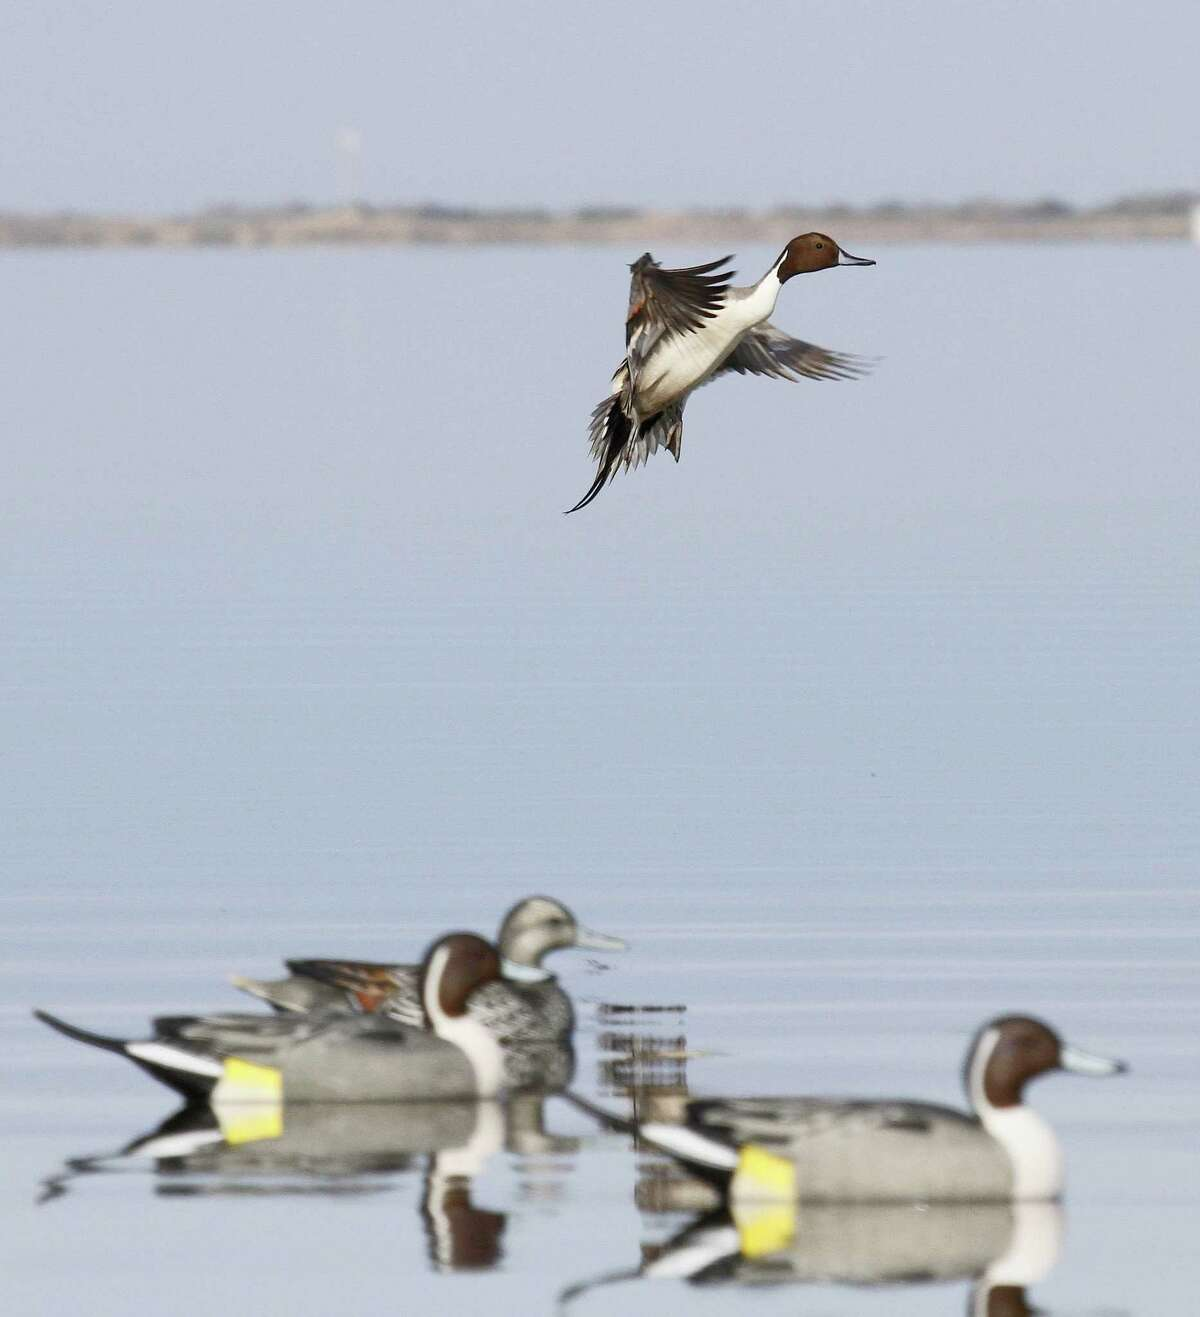 Twenty-five years after lead shot was banned nationwide for use in waterfowl hunting, ducks continue to ingest the toxic spent pellets. A recent study of pintails wintering on the Texas coast found 3 percent had lead shot in their gizzards.